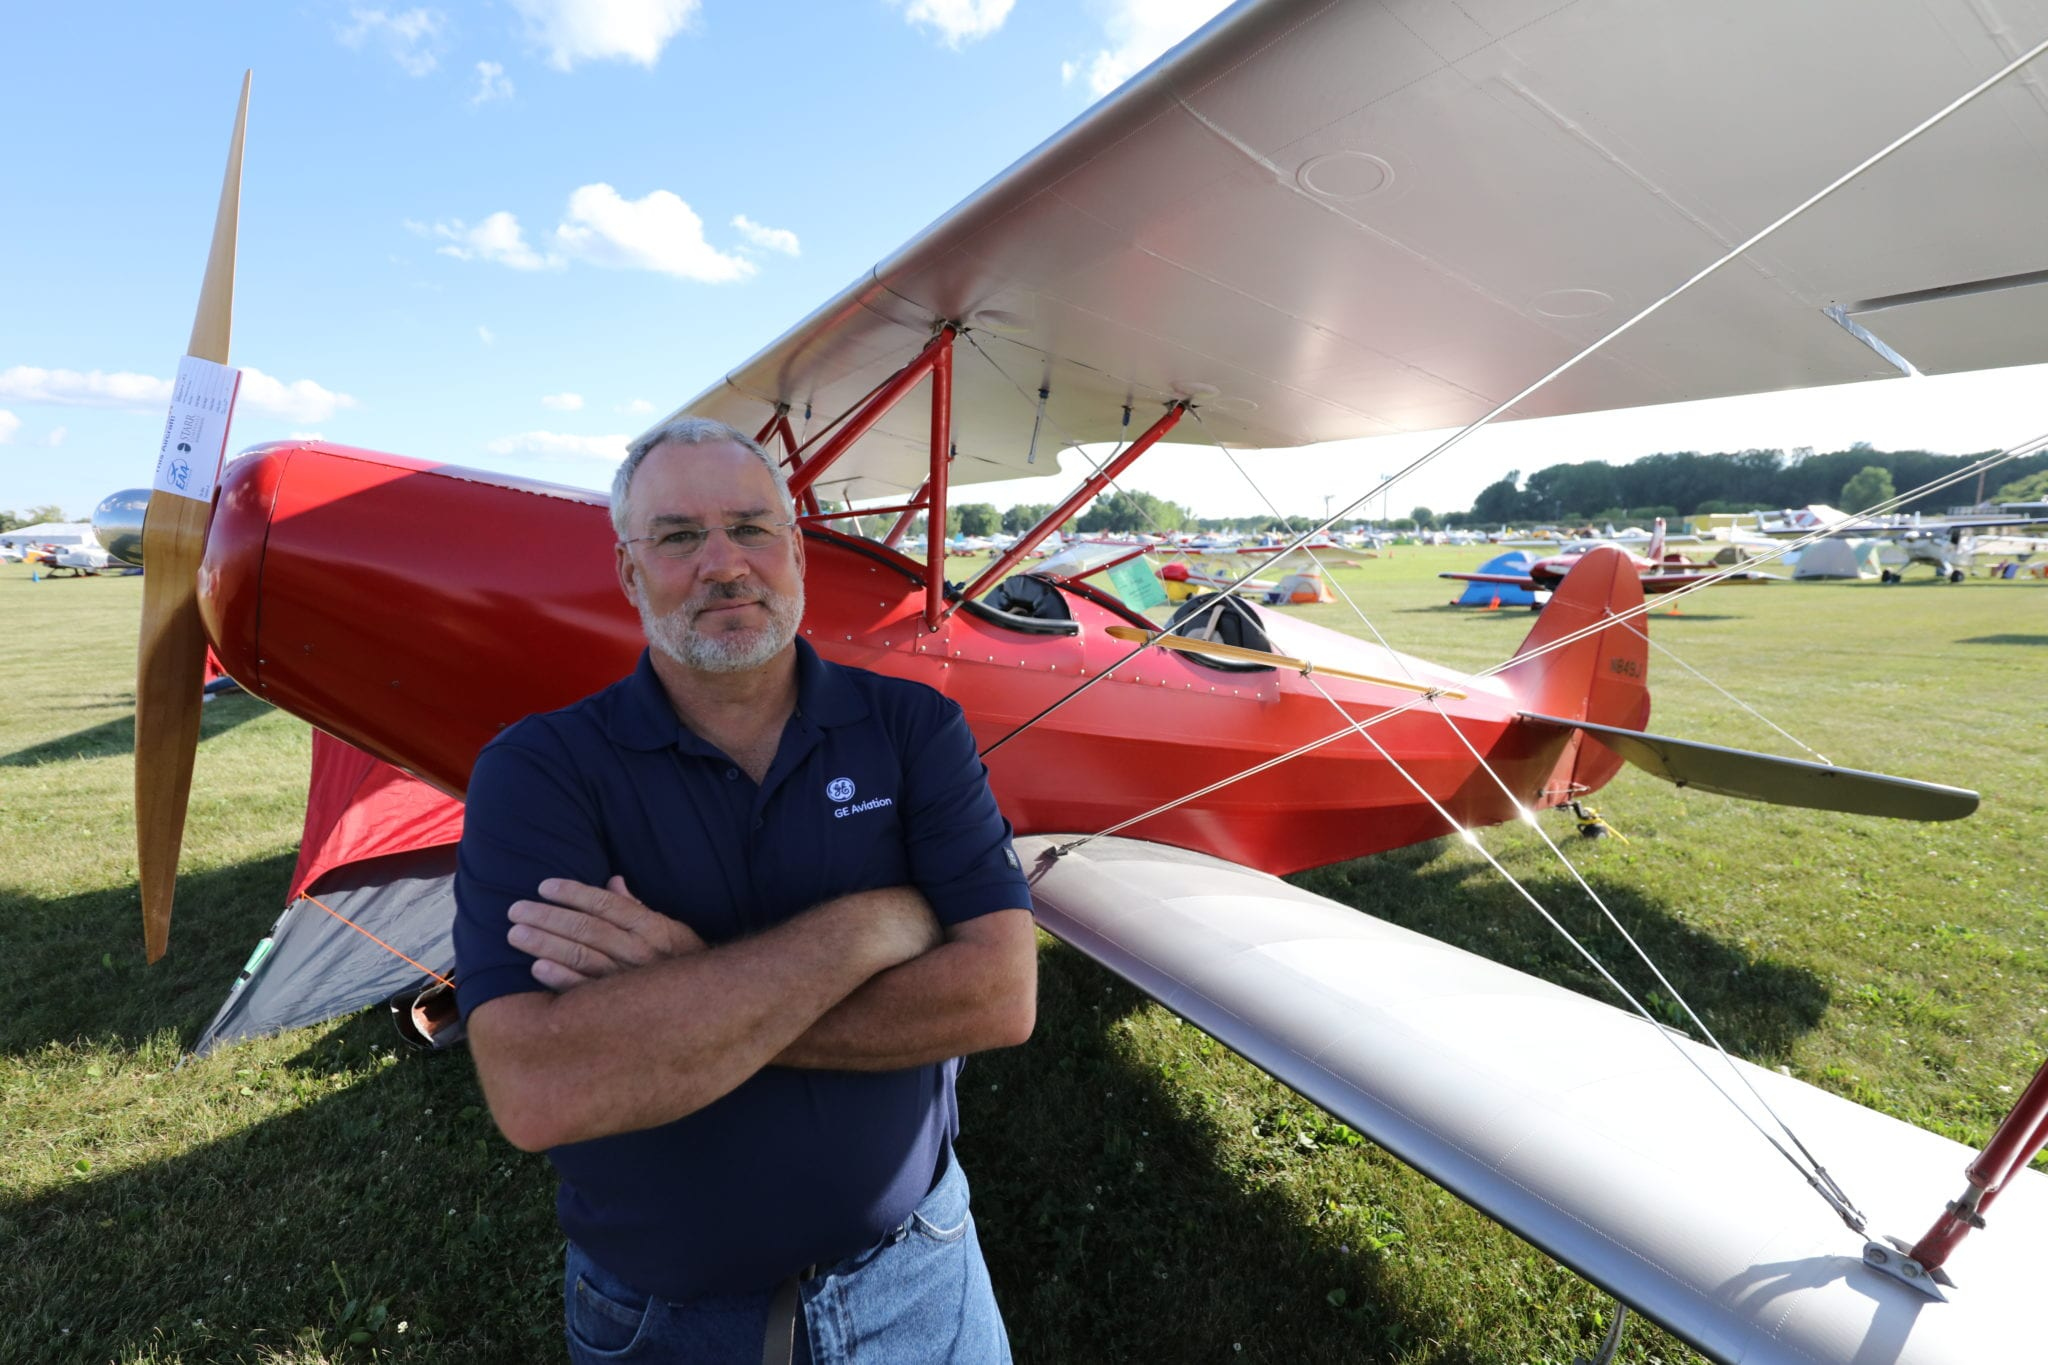 The sky was totally his: Jeff Beam flew his red biplane 800 miles to be at the Oshkosh fly-in